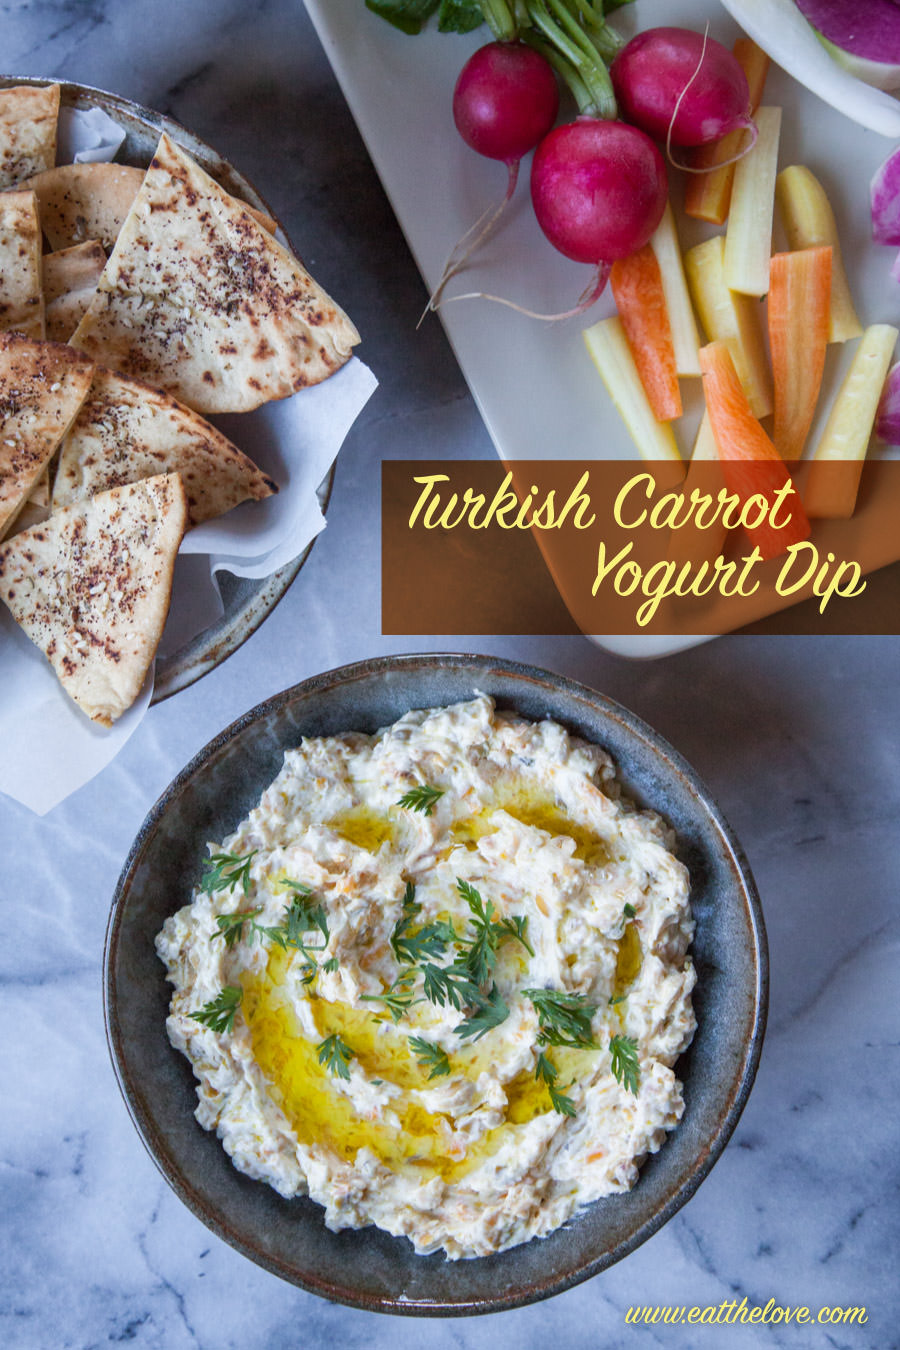 Turkish Carrot Yogurt Dip. Photo and recipe by Irvin Lin of Eat the Love.